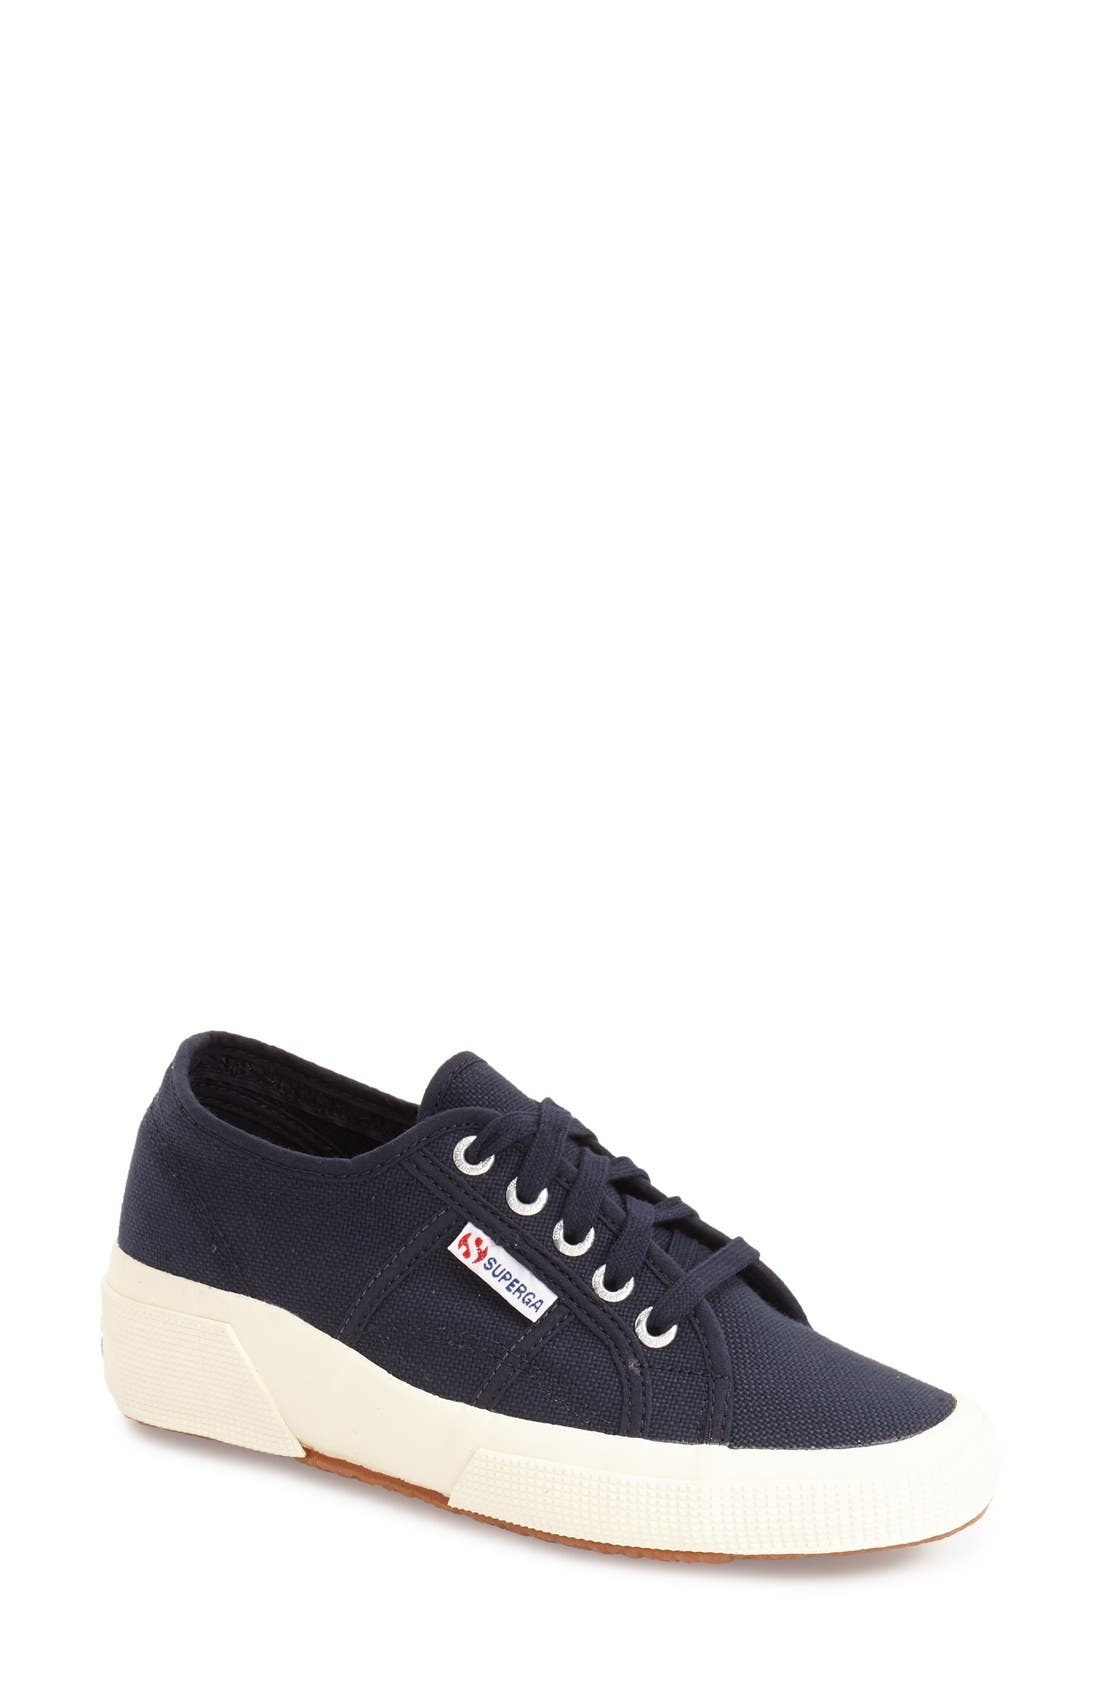 'Linea' Wedge Sneaker,                         Main,                         color, Navy